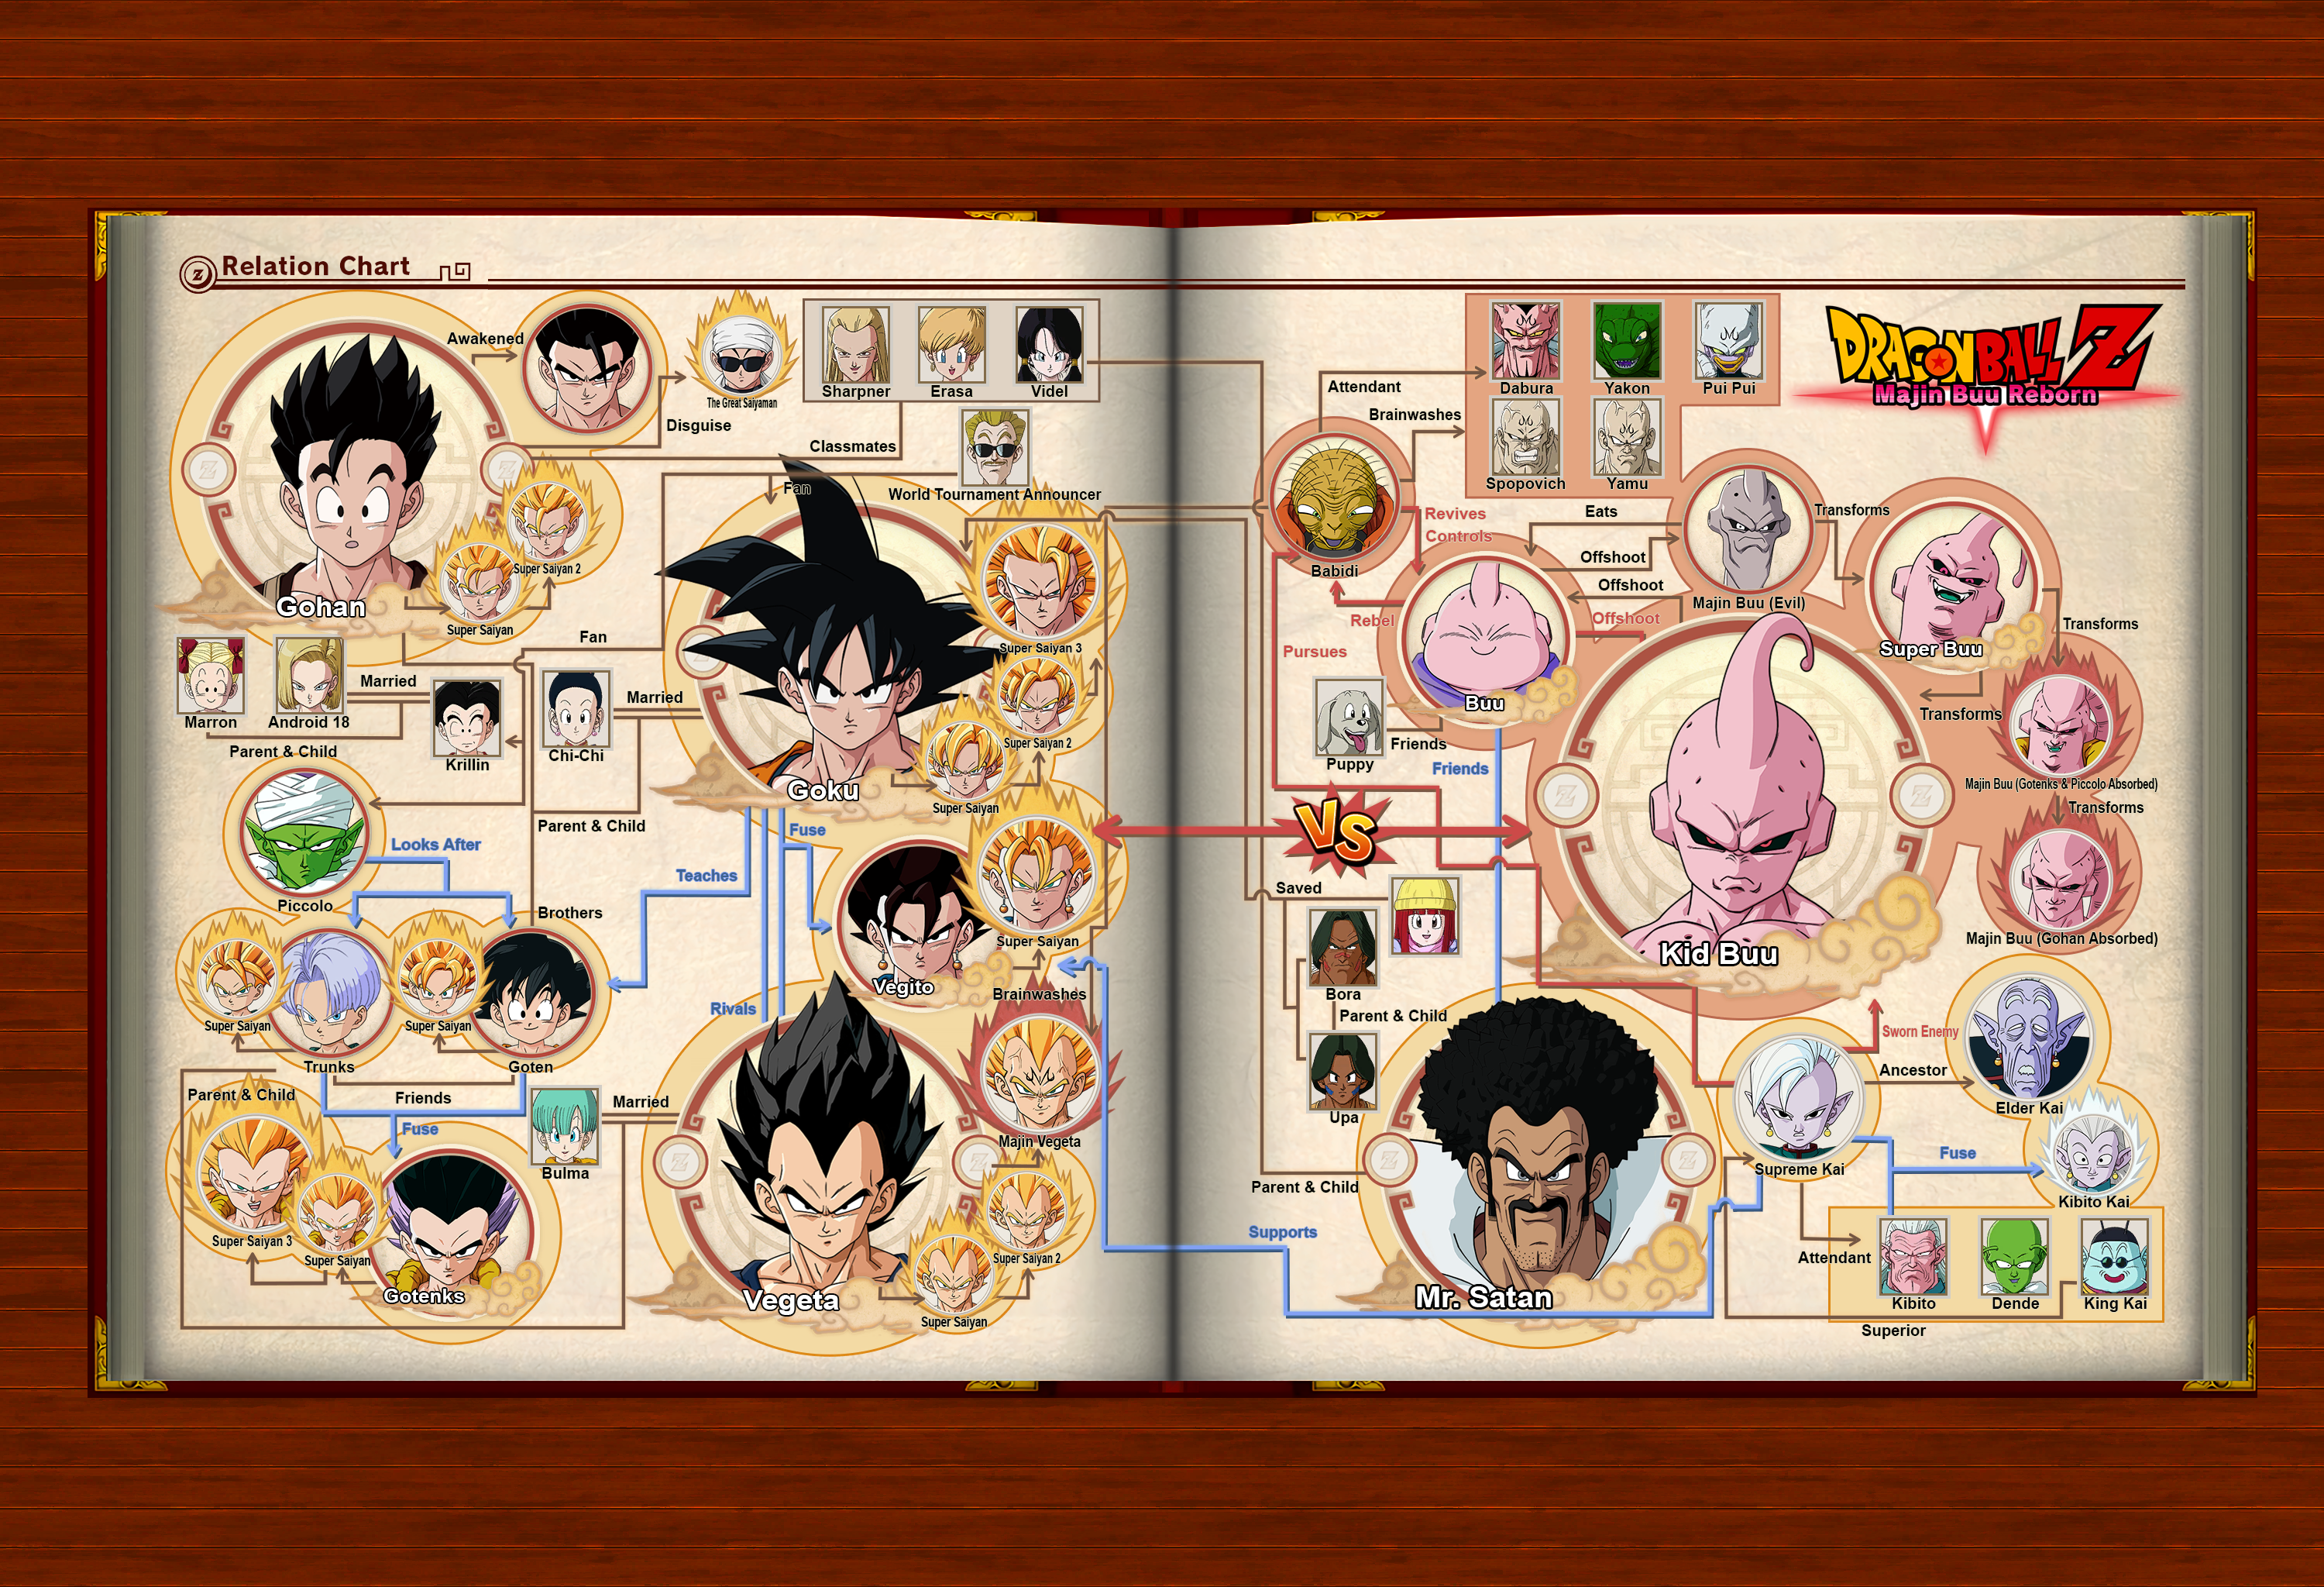 Buu Saga Relation Chart Artbook (Dragon Ball Z Kakarot)